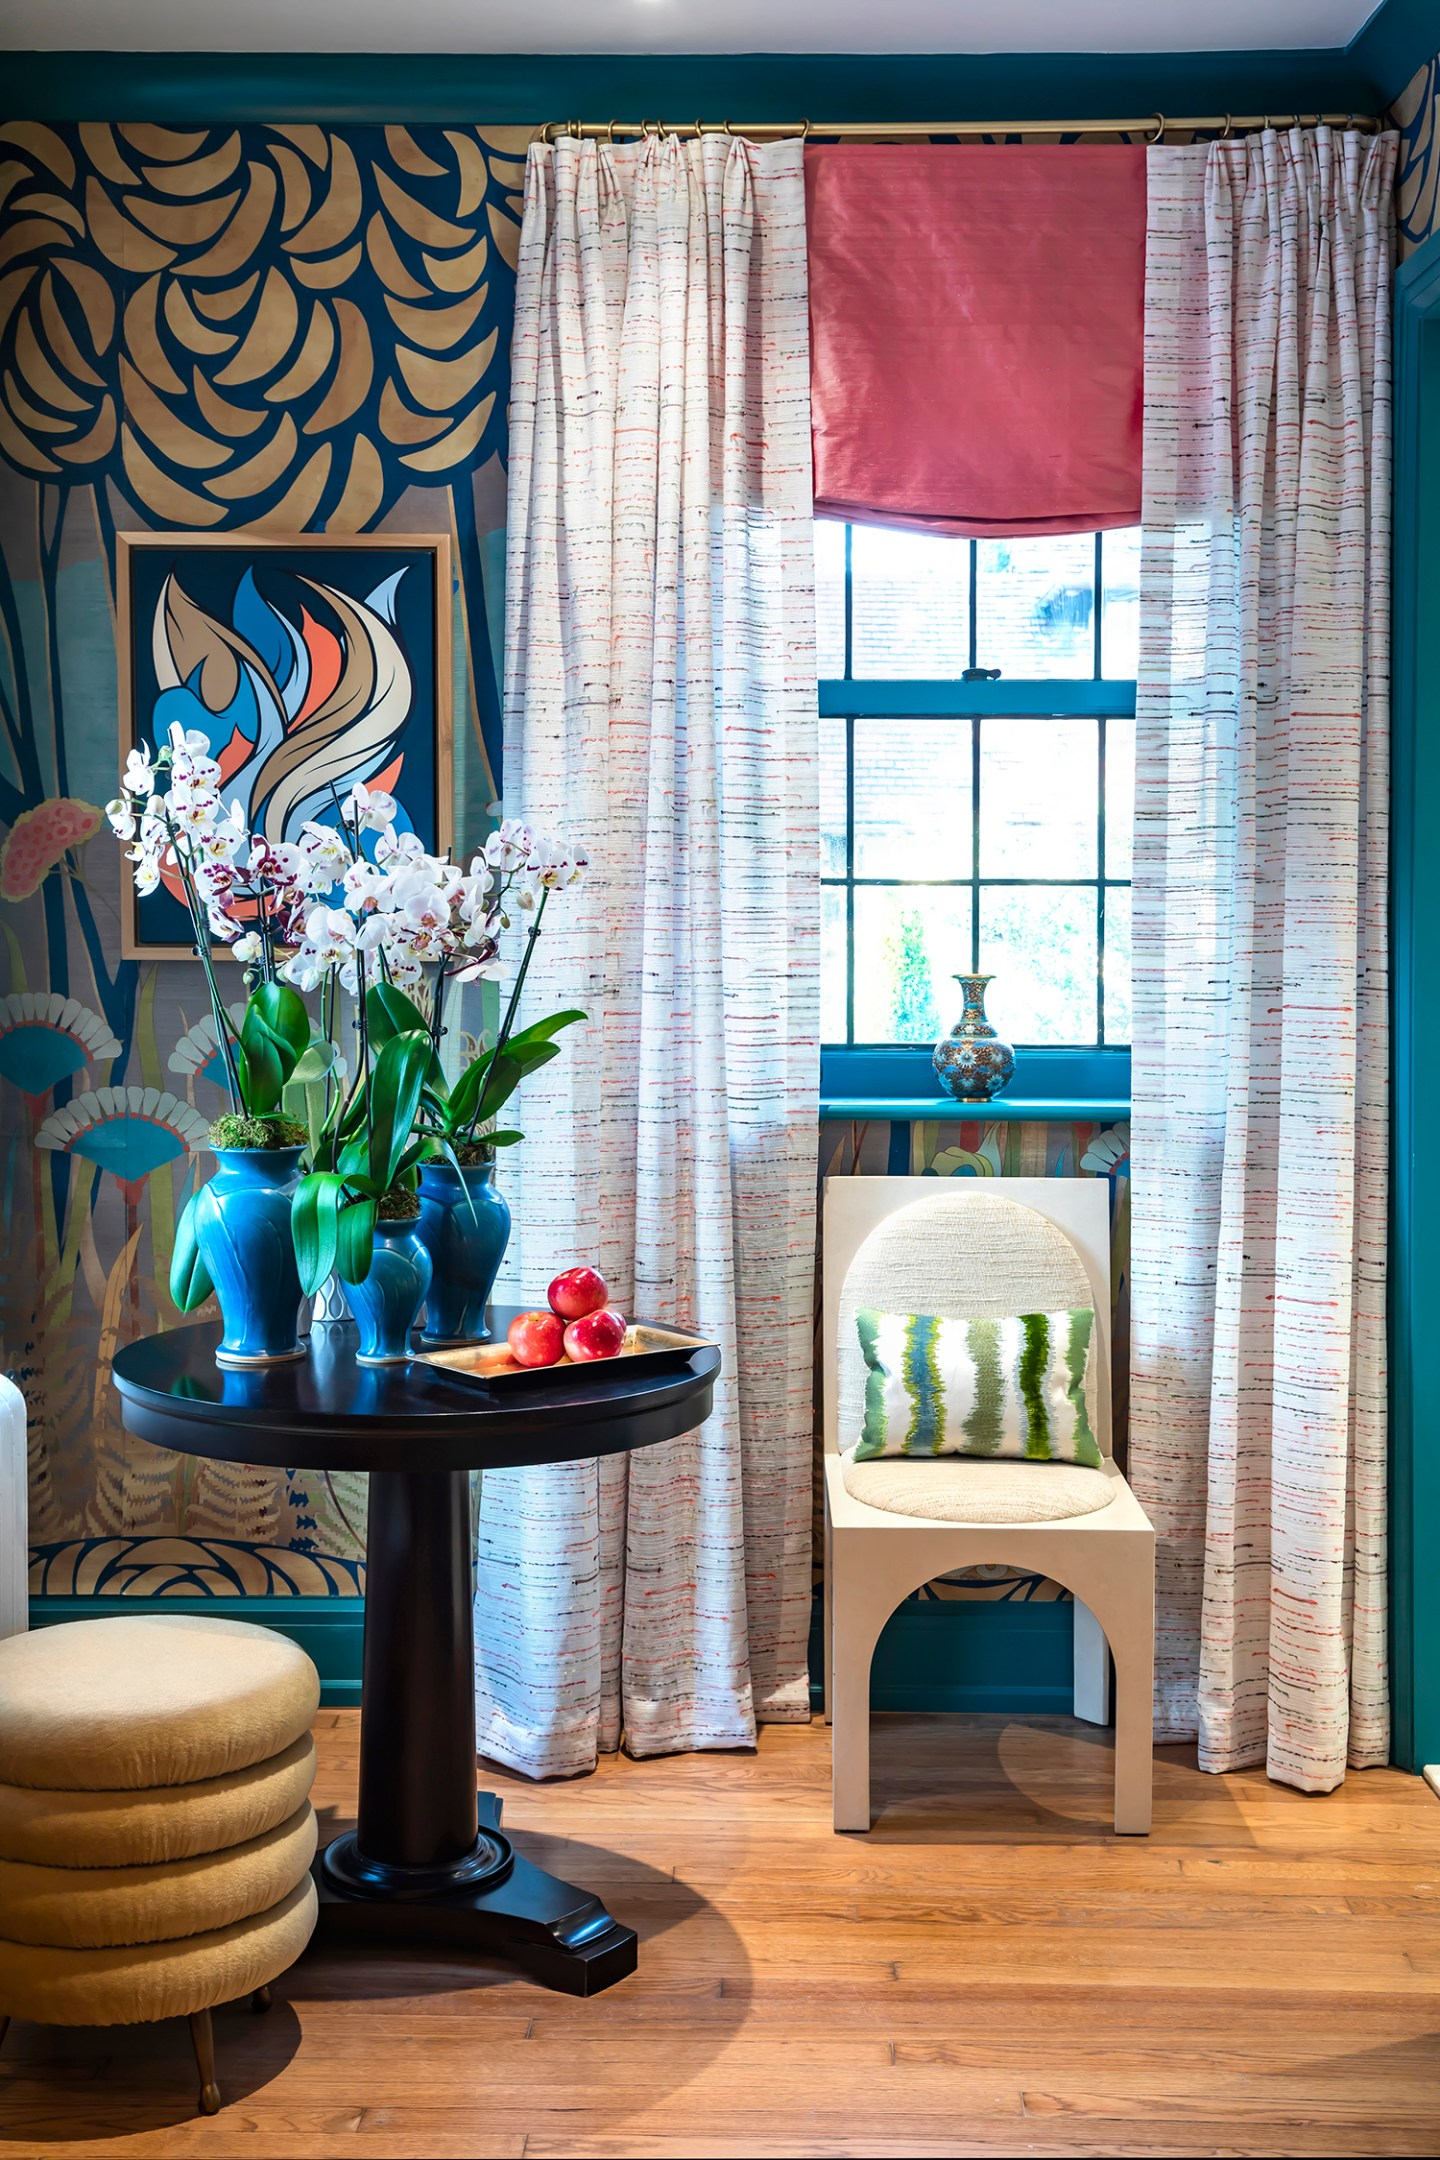 Courtney-McLeod-RMLID-JL-Showhouse_07 Tips for Adding Color and Pattern to a Roomfrom a Louisiana Native